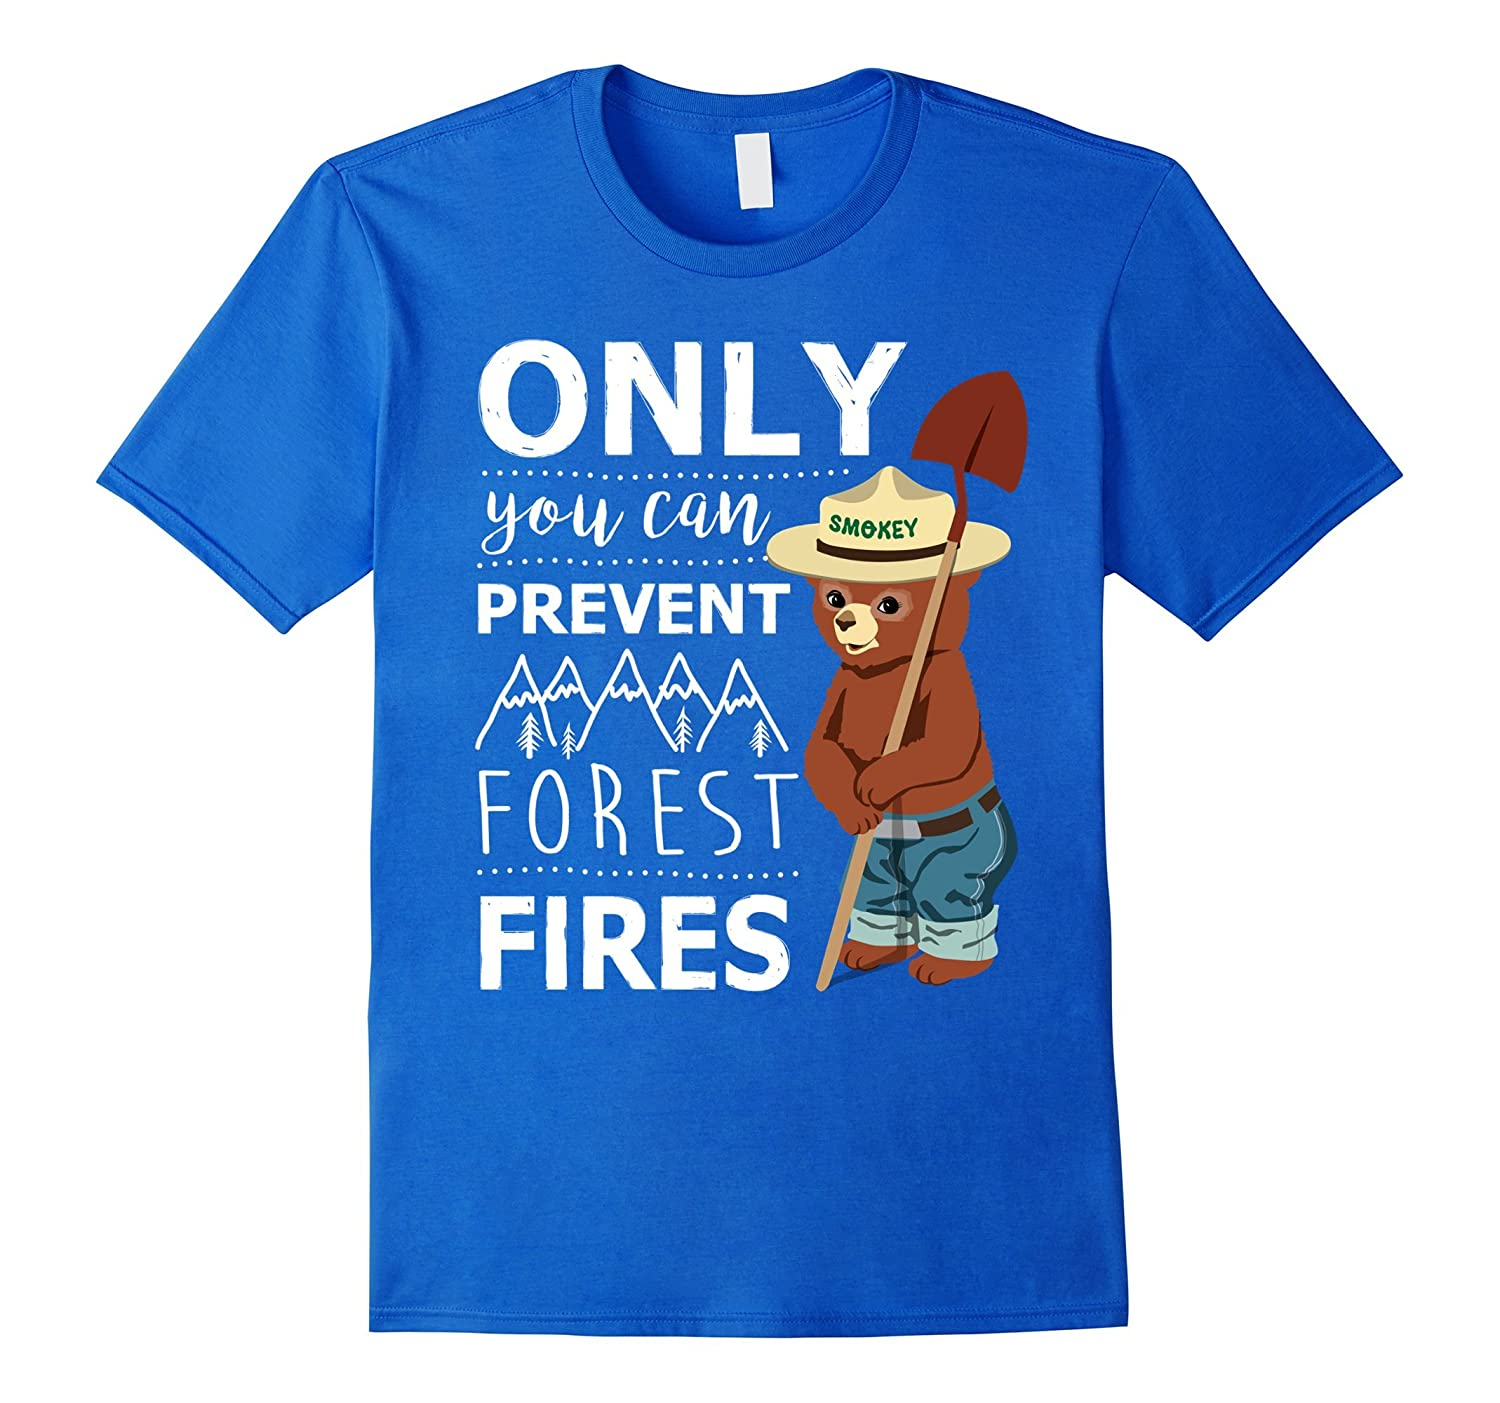 only you can prevent forest fires t shirt rt rateeshirt. Black Bedroom Furniture Sets. Home Design Ideas